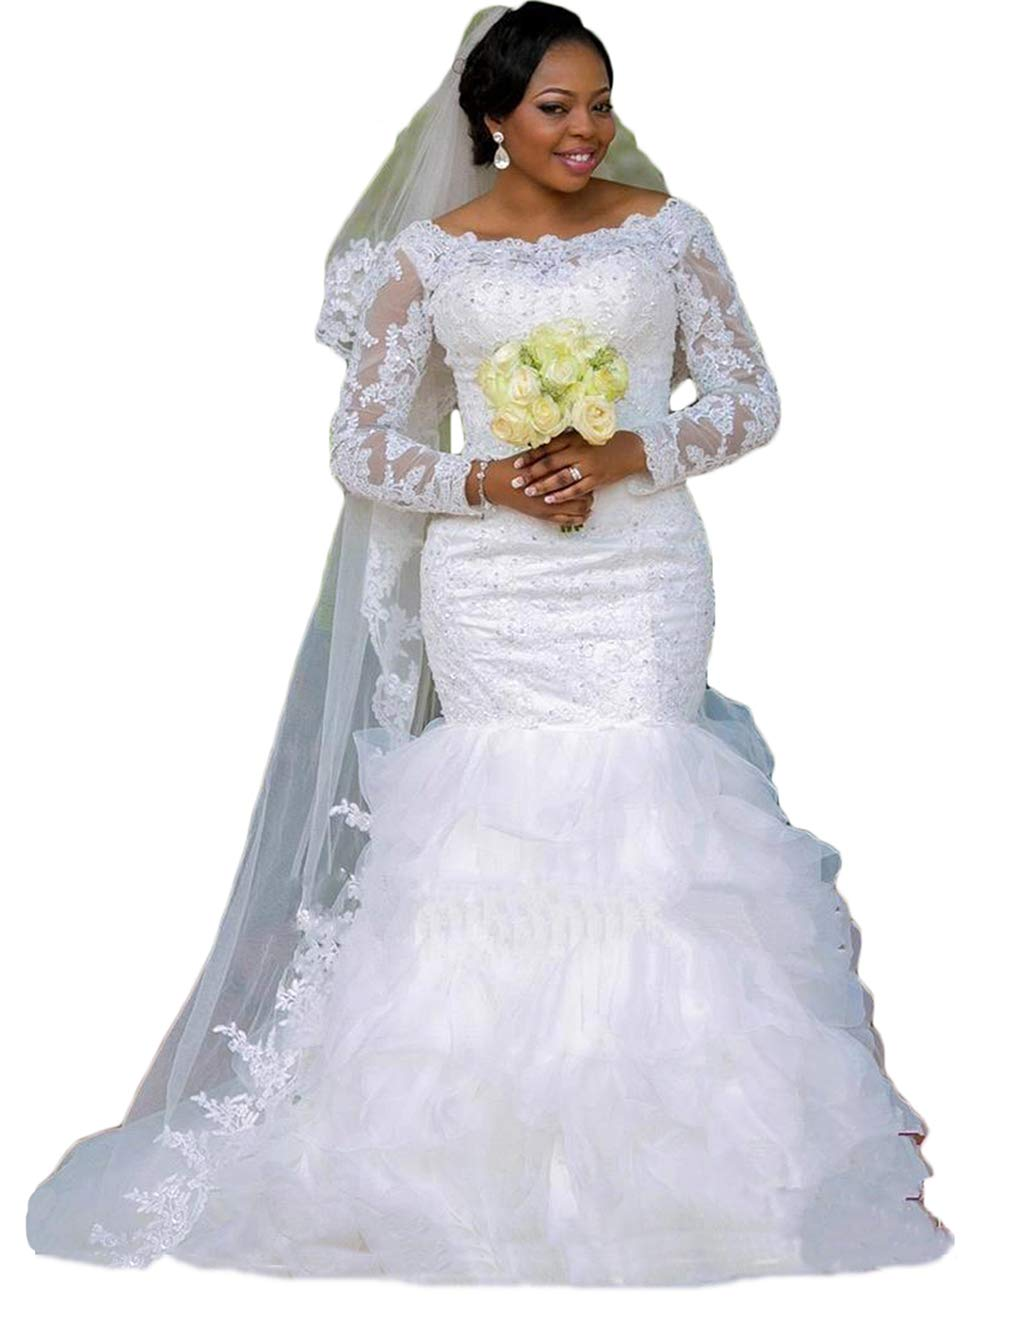 Women S Mermaid Wedding Dresses Ball Gown Long Sleeve Lace Beaded Wedding Dresses For Bride 2019 Plus Size White